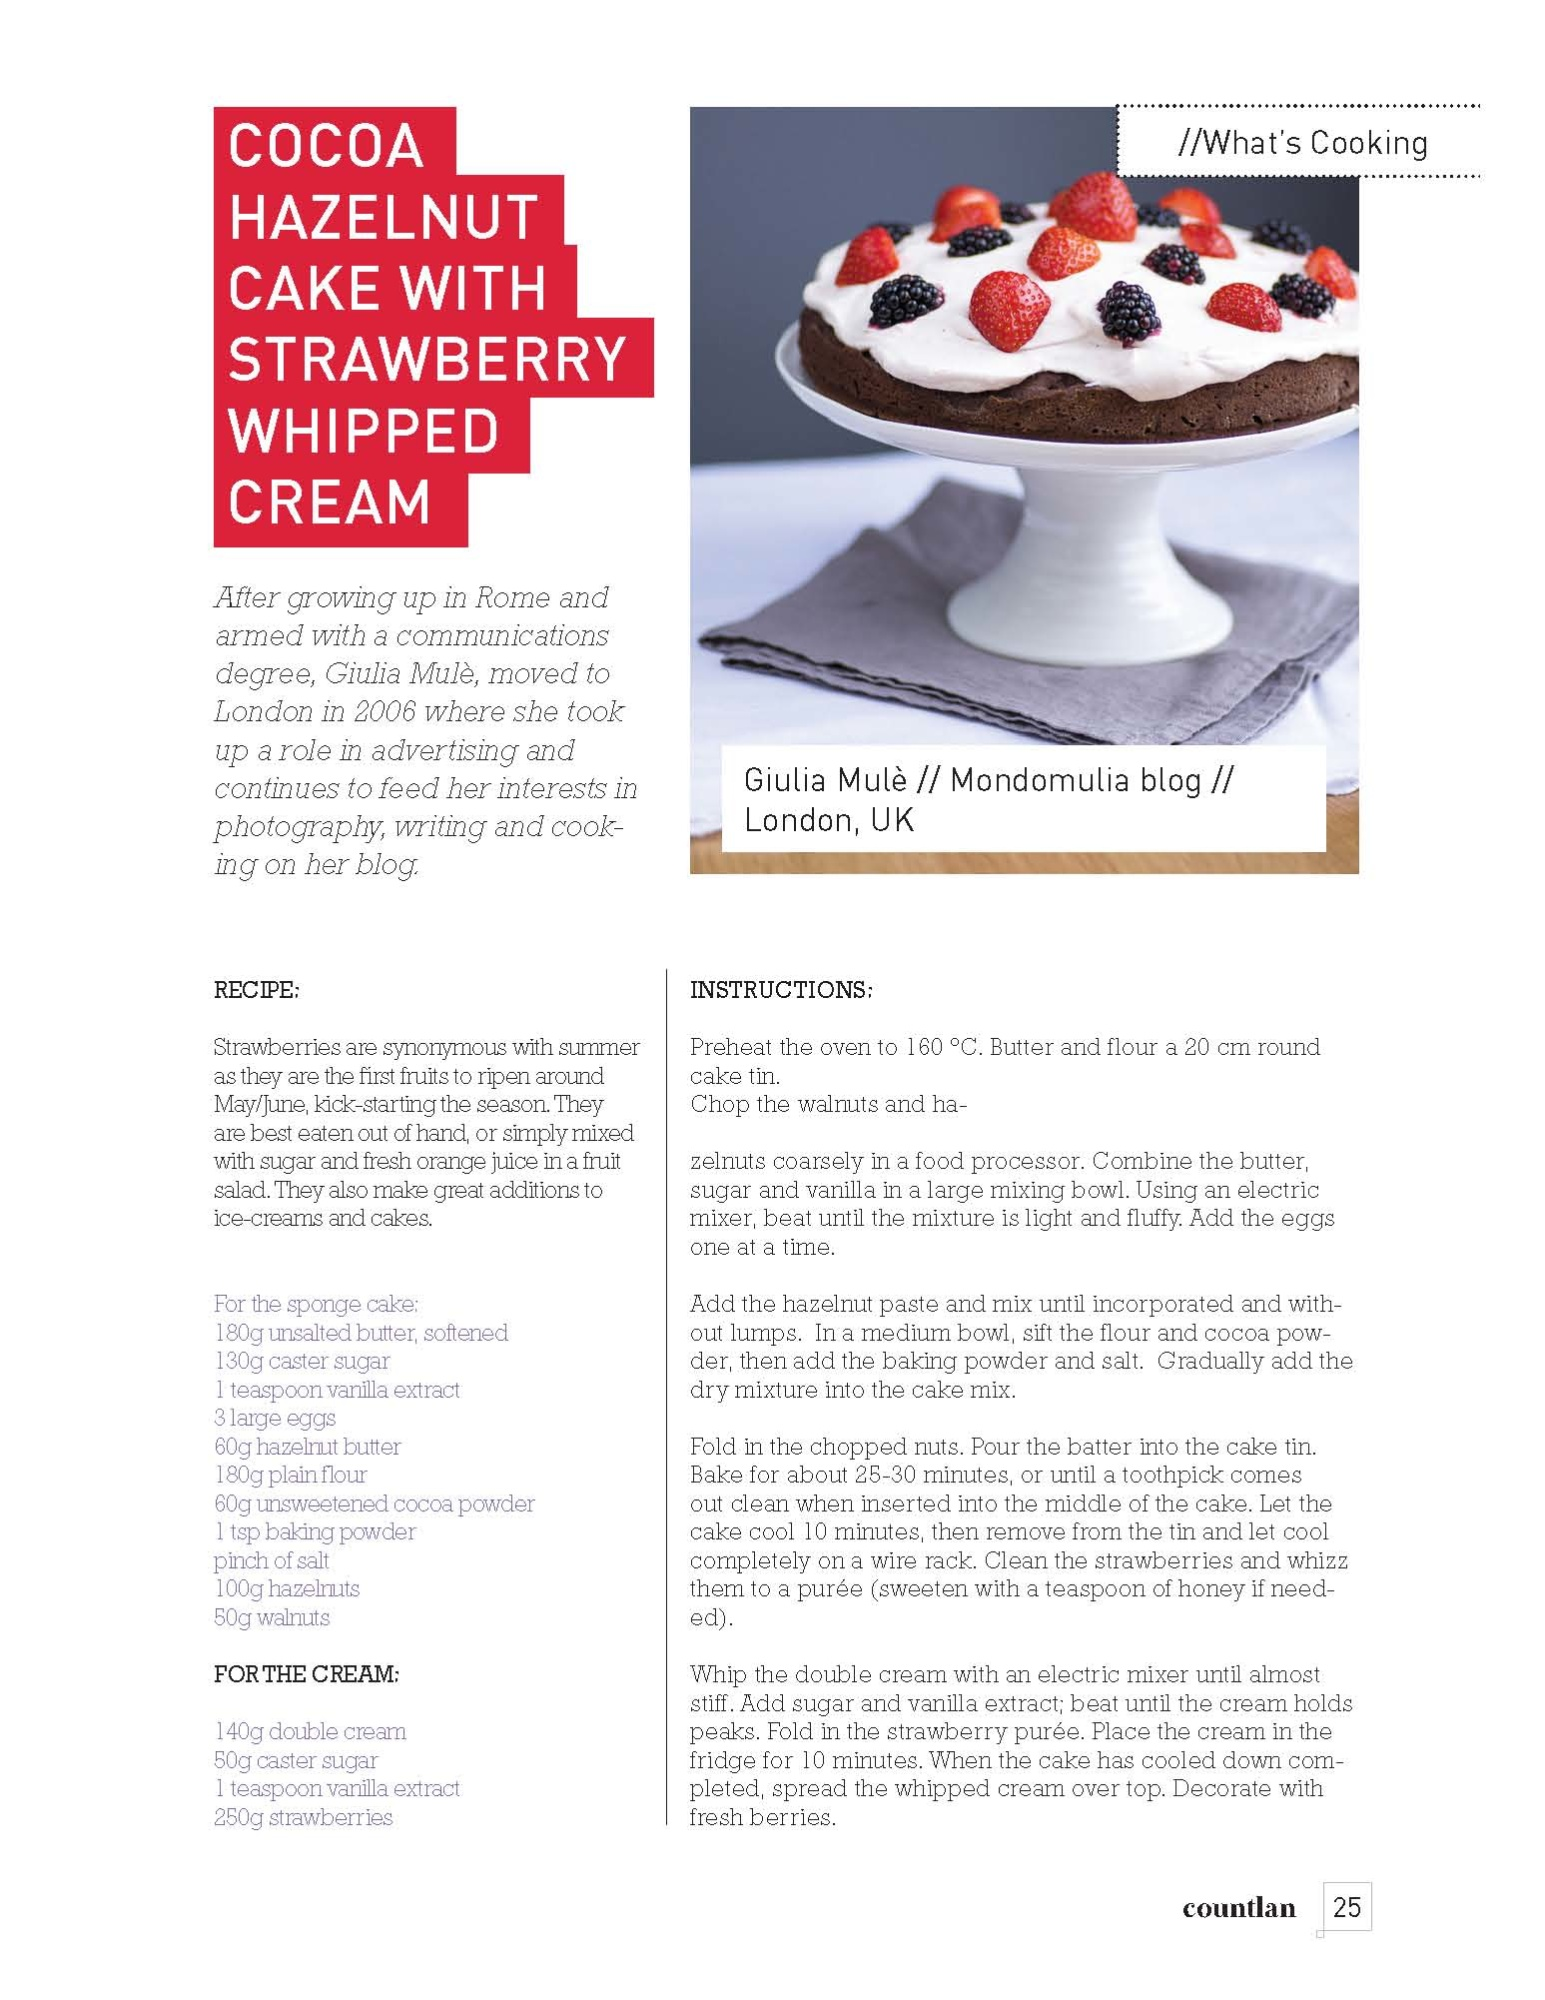 Cocoa Hazelnut Cake with Strawberries and Whipped Cream